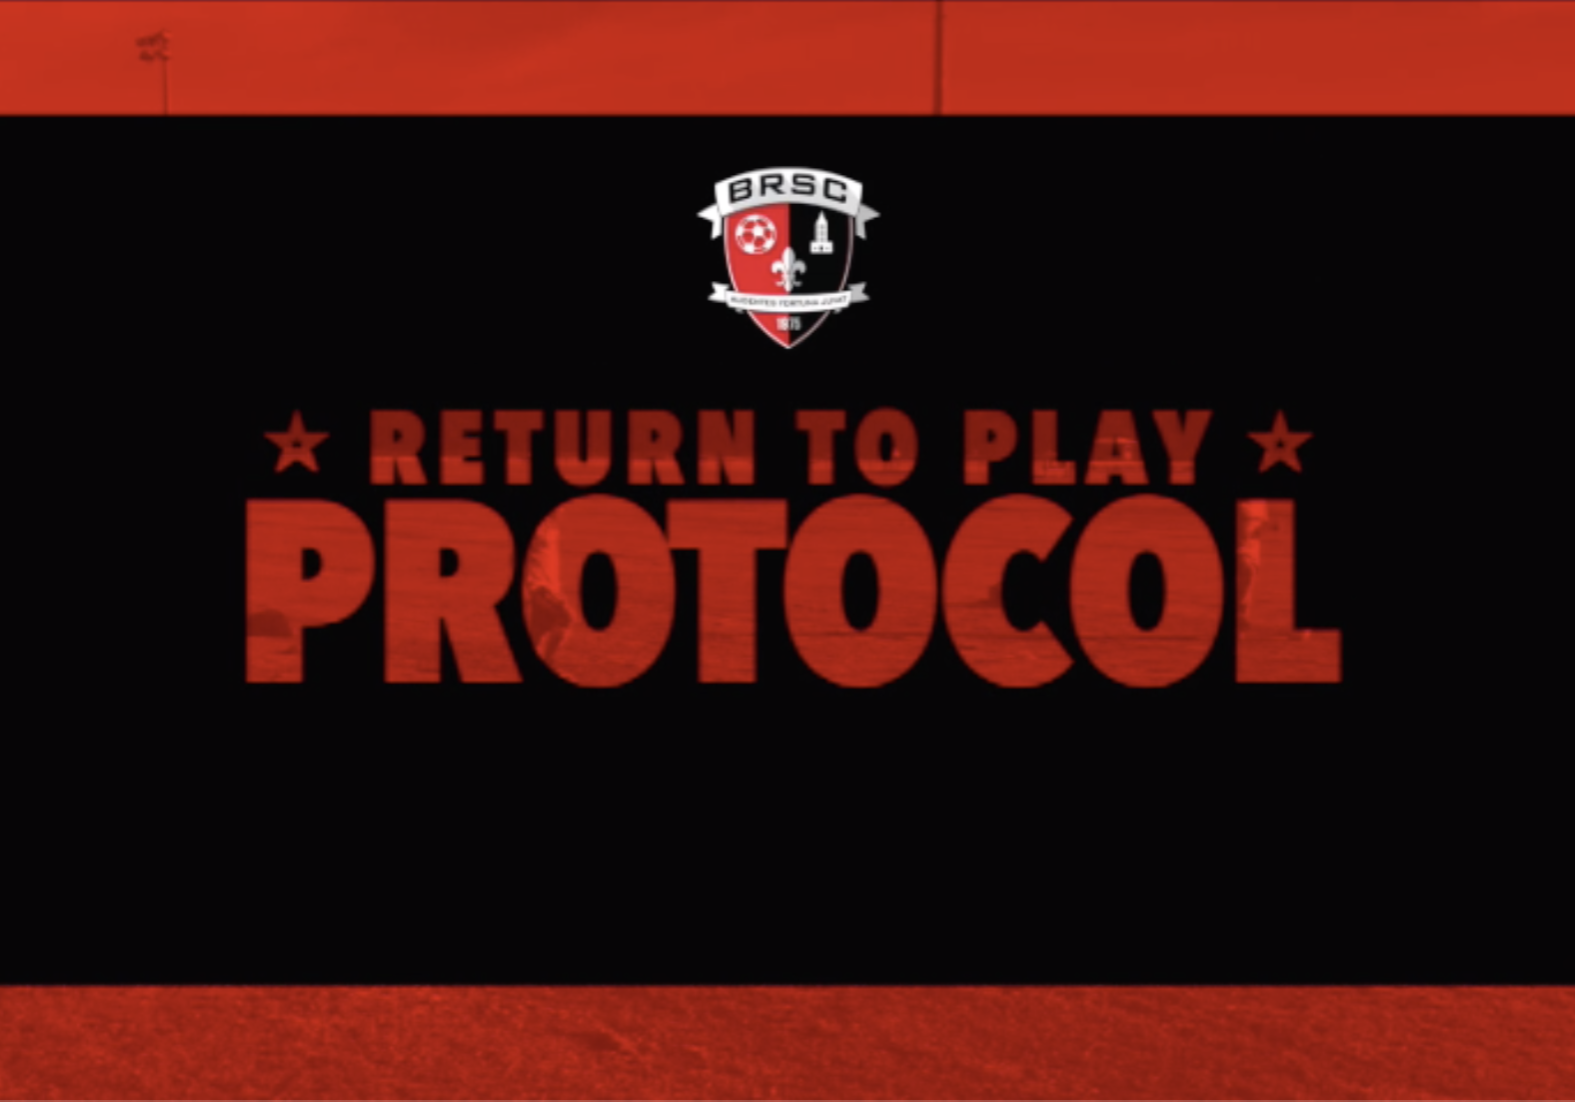 BRSC Return to Play Protocol